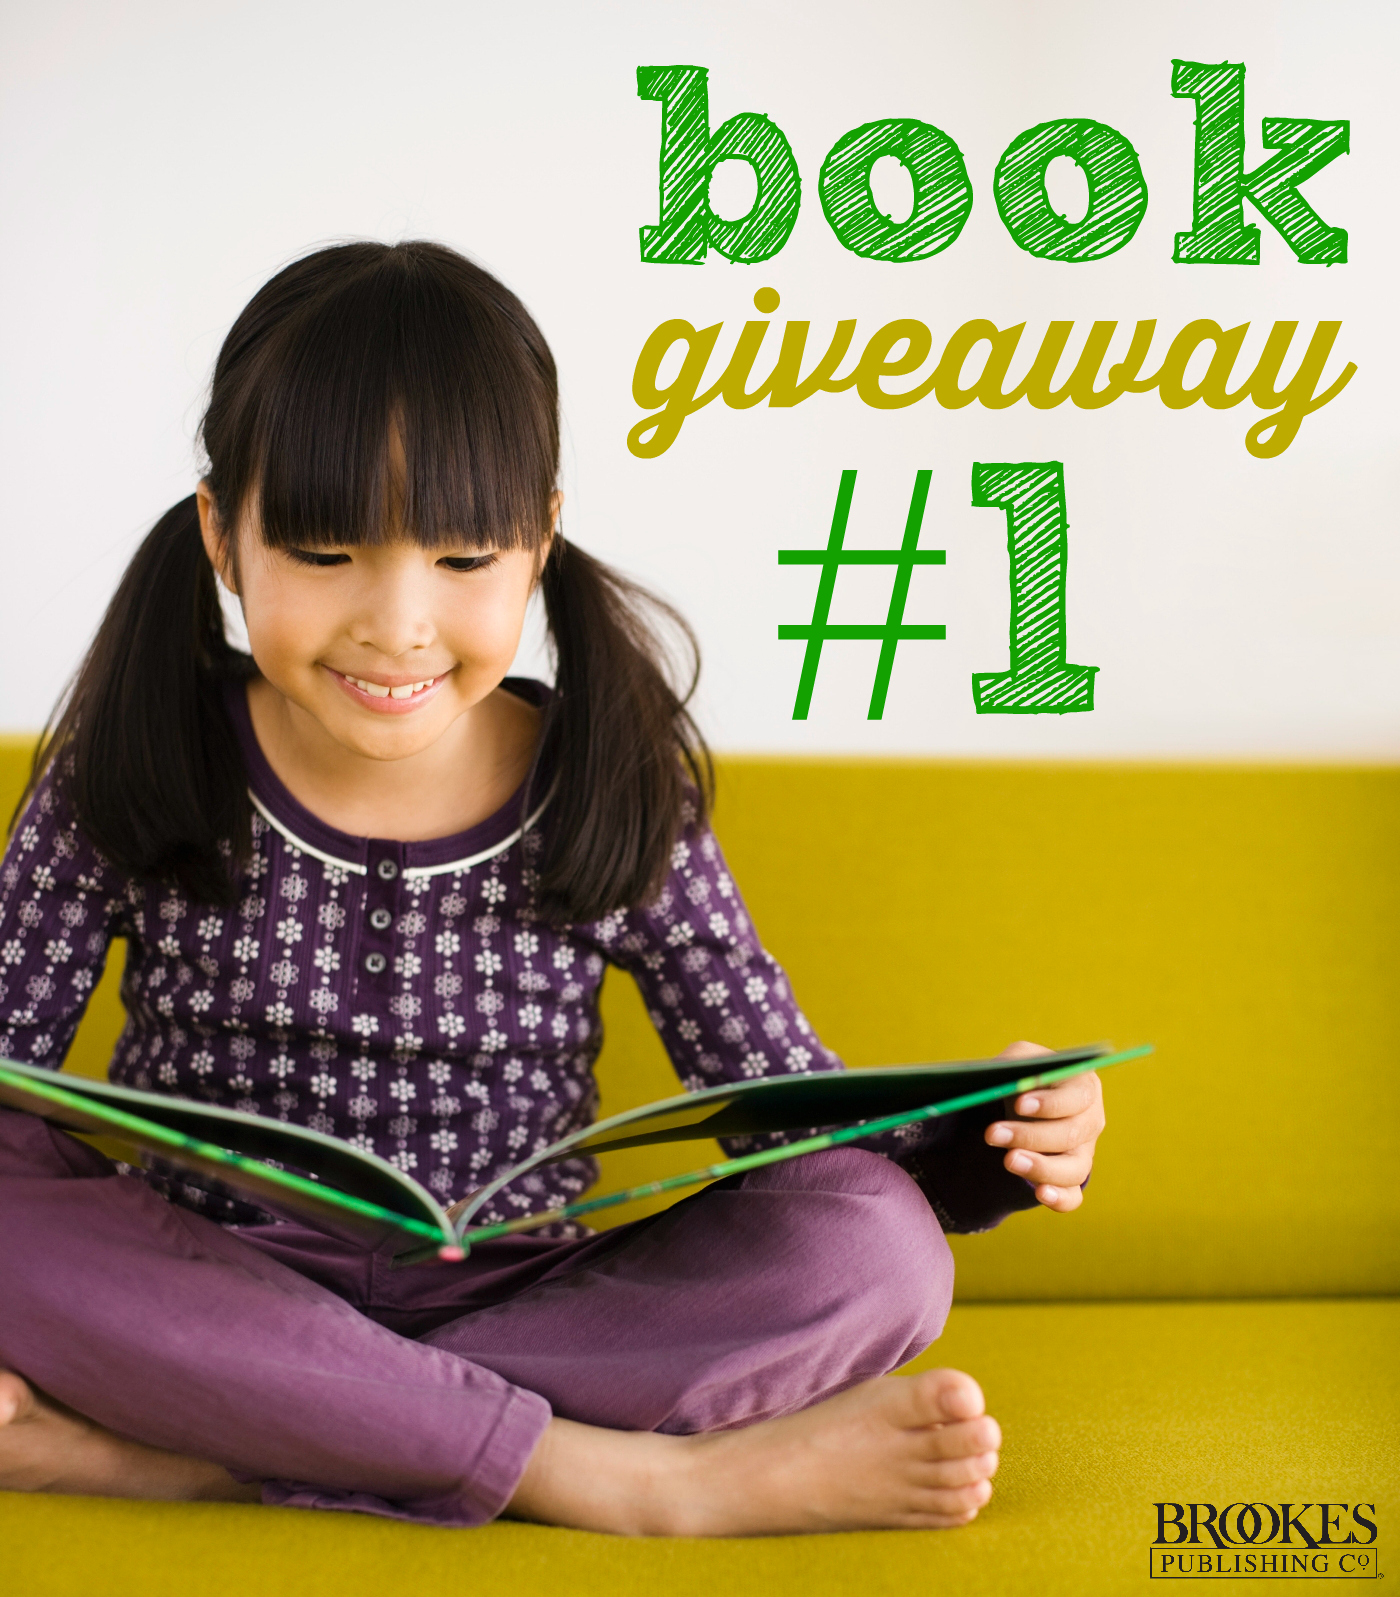 August Giveaway #1: Book and INCLUSION ROCKS! Mug